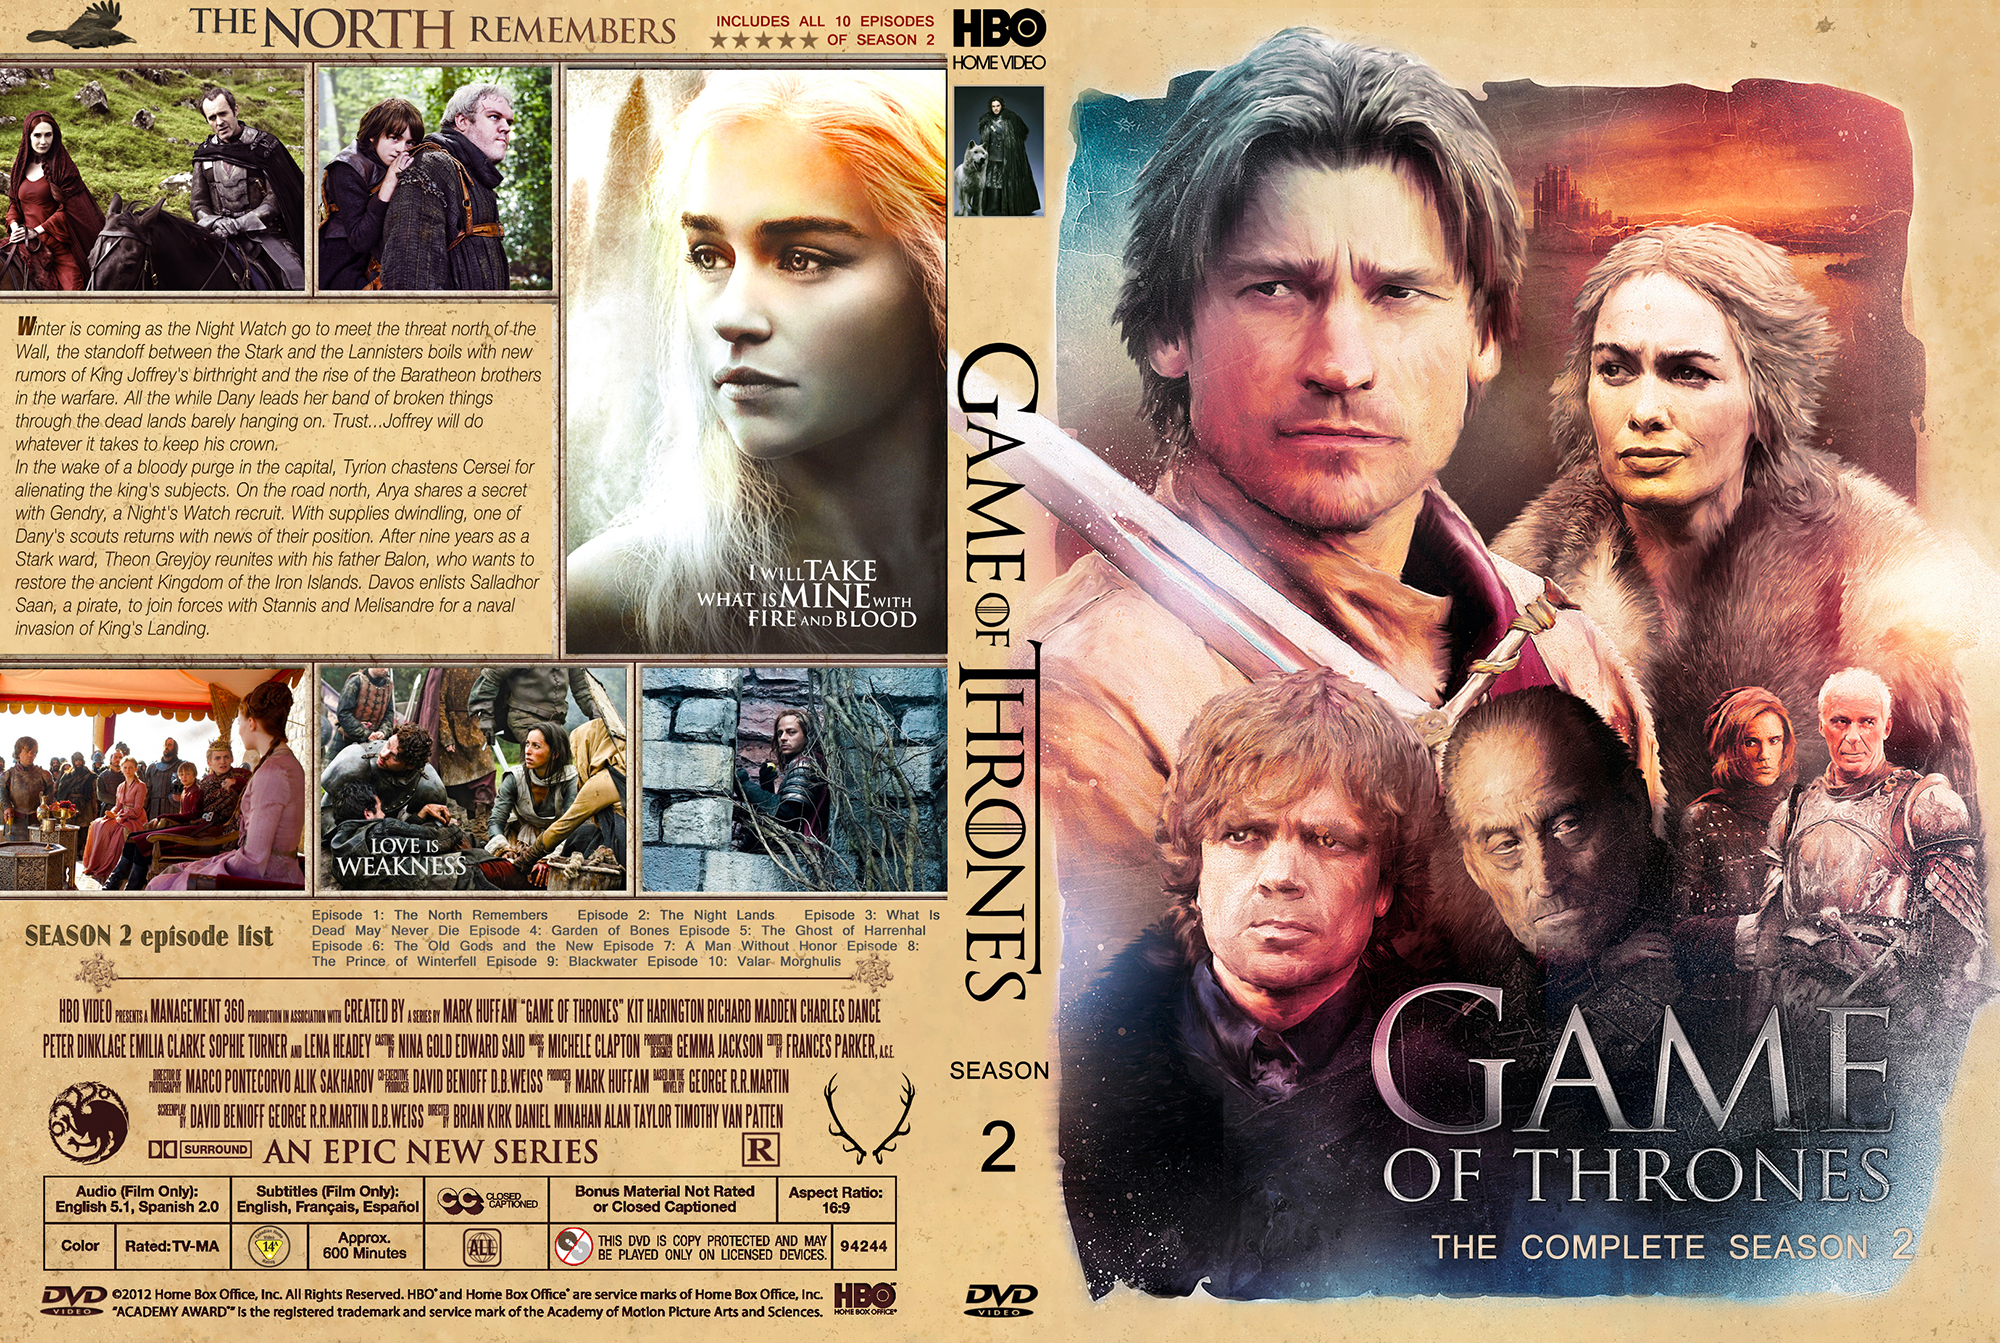 imgs for game of thrones dvd cover. Black Bedroom Furniture Sets. Home Design Ideas